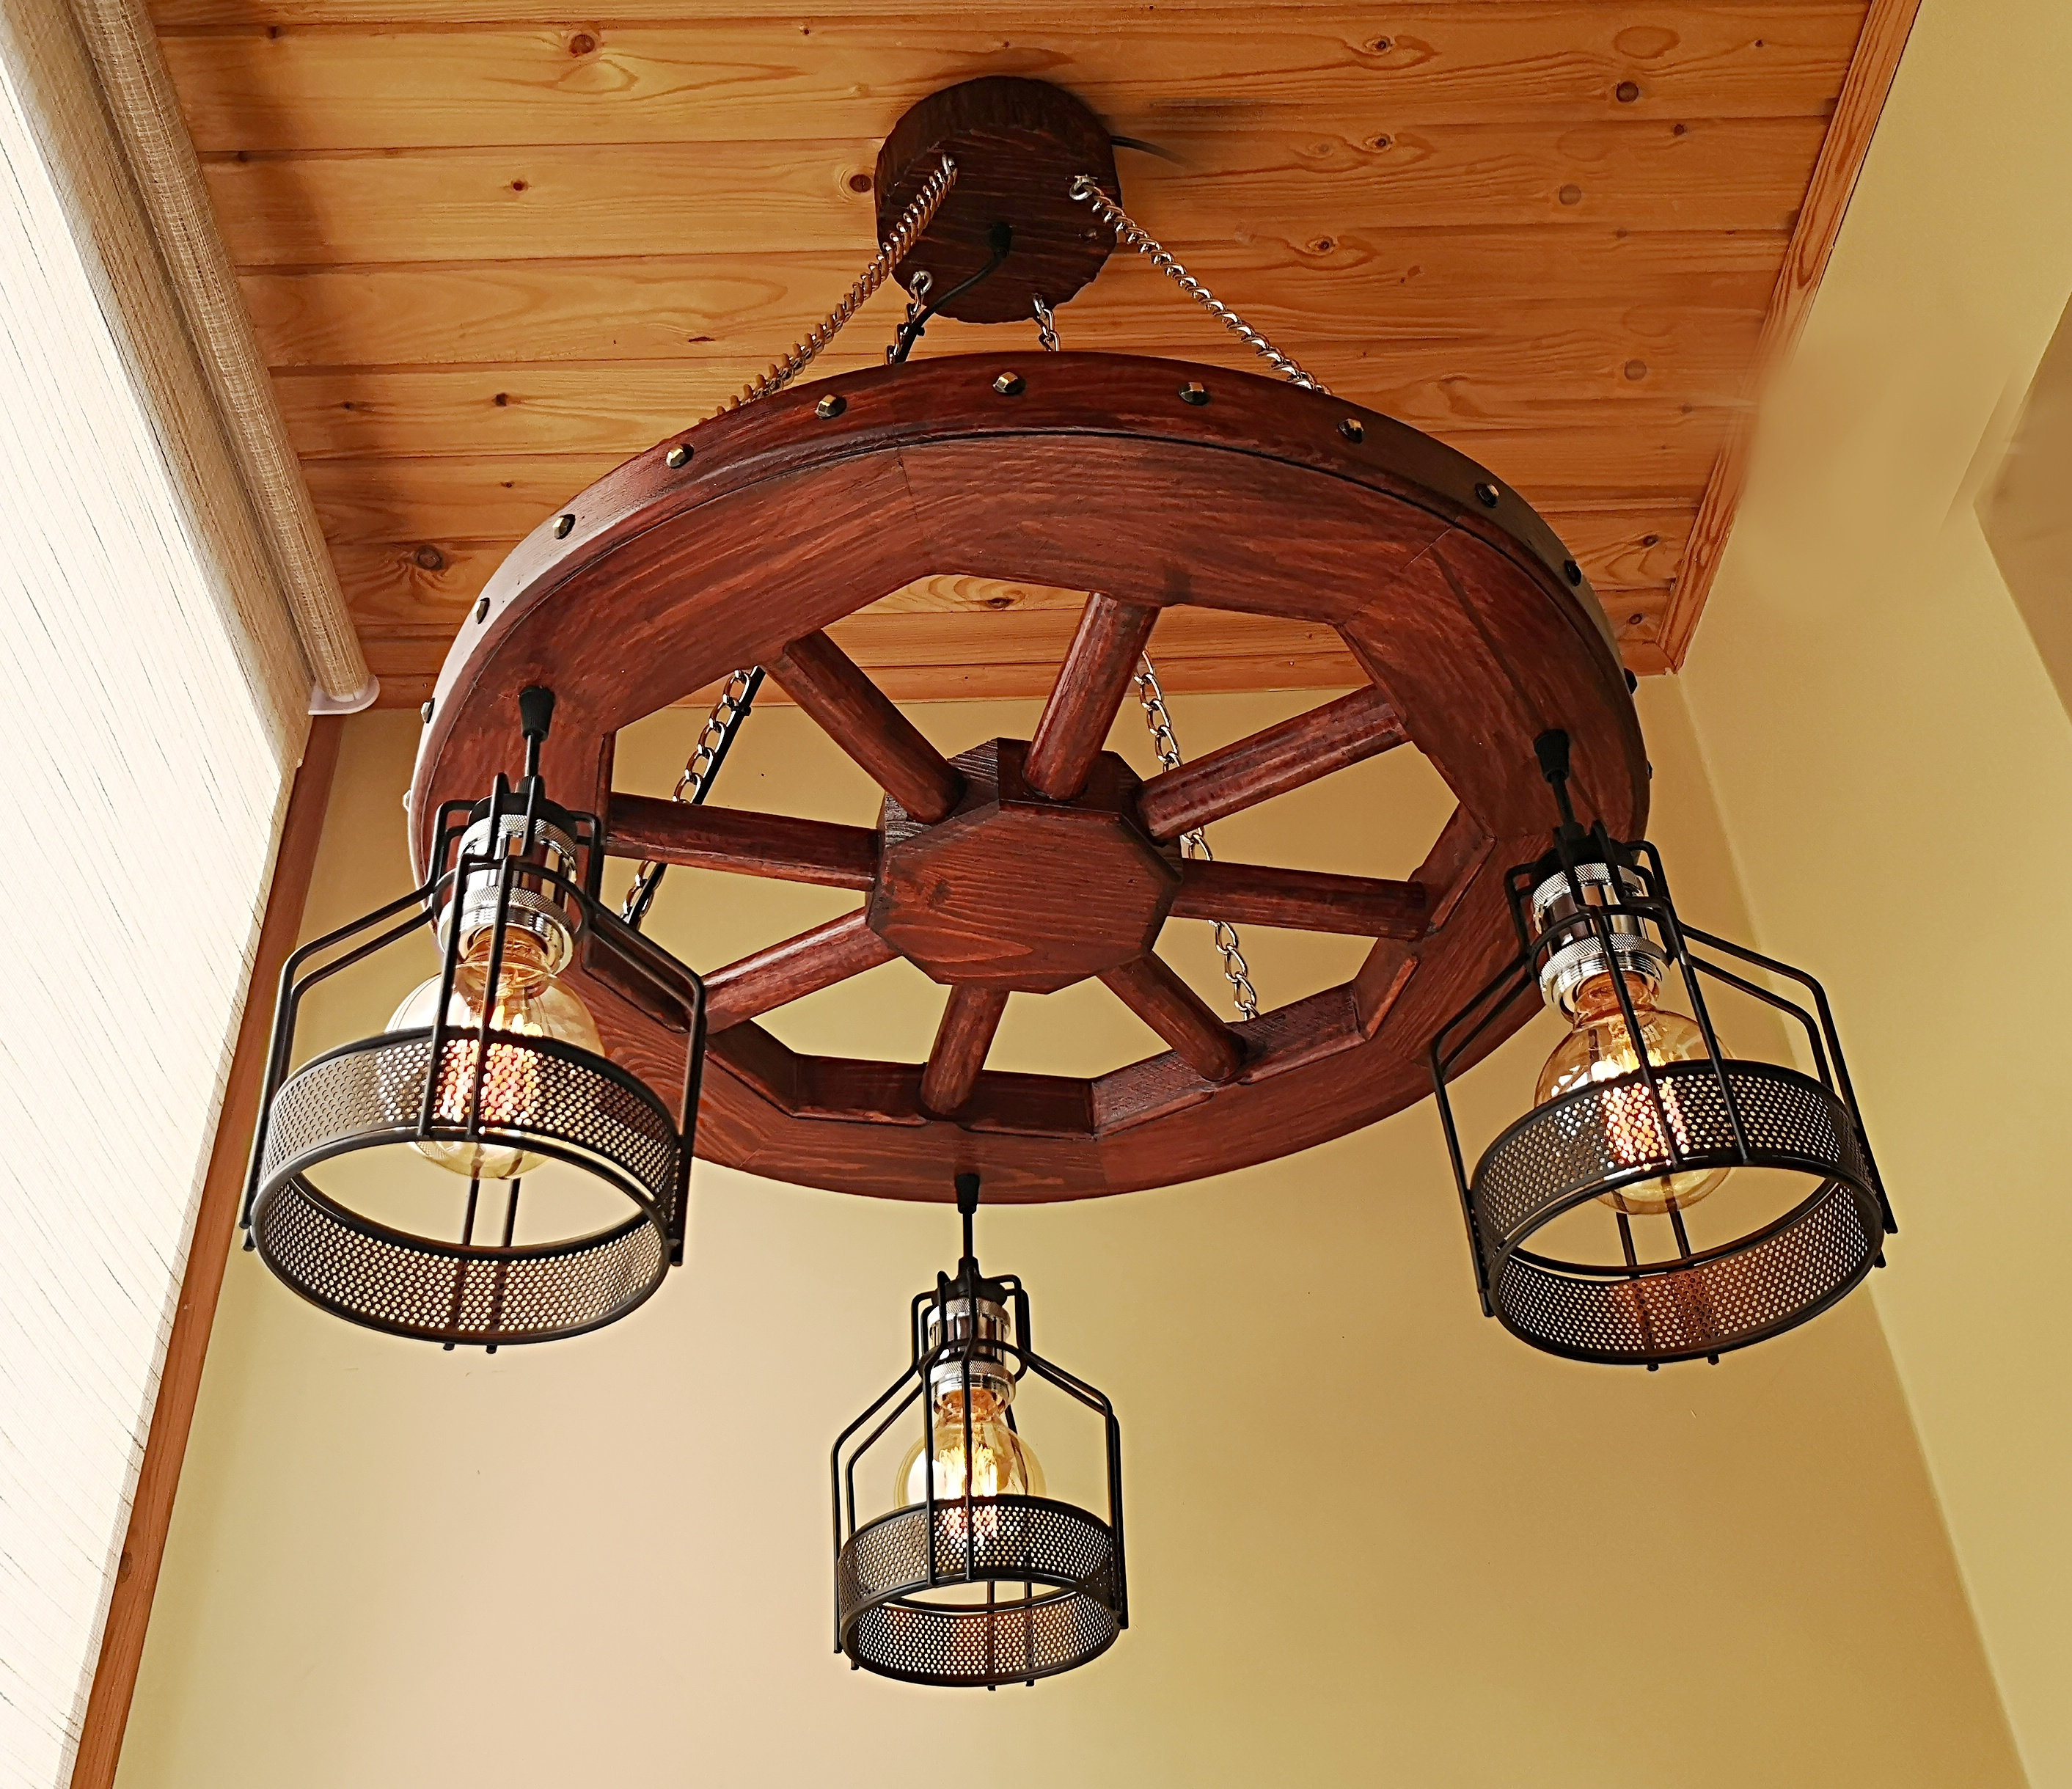 Wagon Wheel Rustic Chandelier Western Decor Pendant Light: Rustic Lighting Wagon Wheel Chandelier